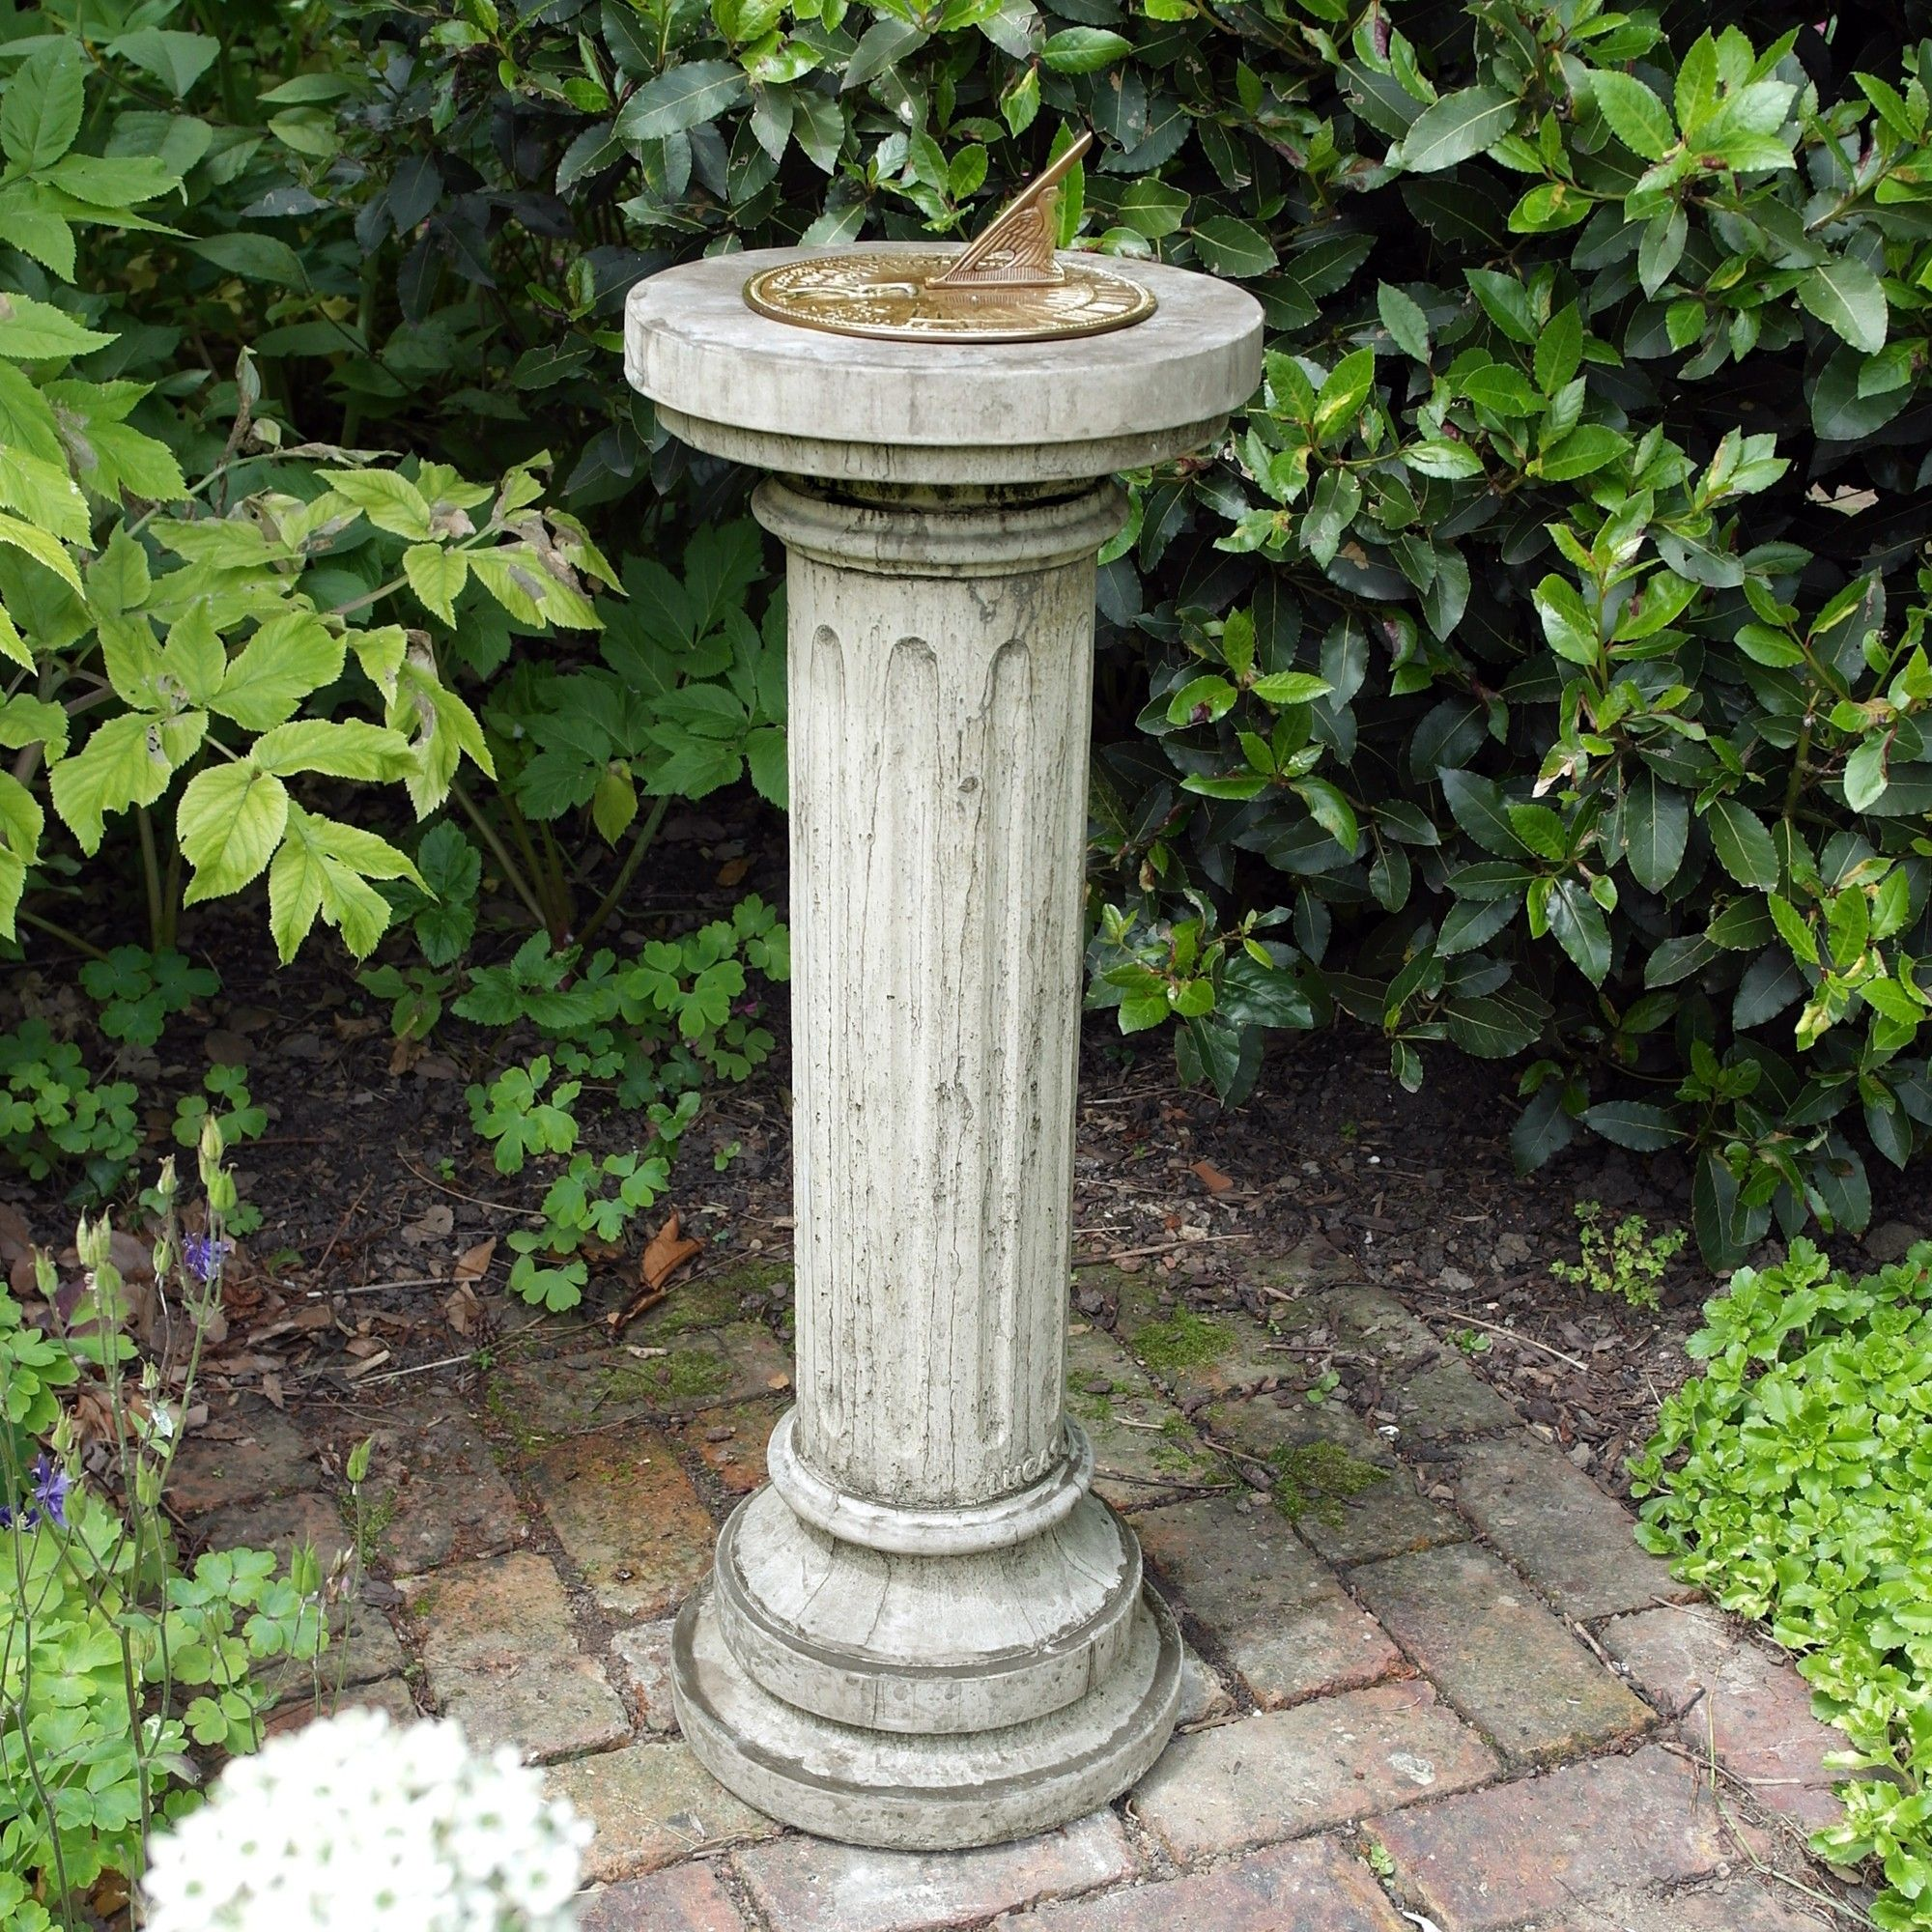 Sundial garden ornament - View The Brighton Aged Brass Stone Sun Dial Garden Sundial Or See Our Full Range Of Exquisite Unique To Statues Sculptures Online